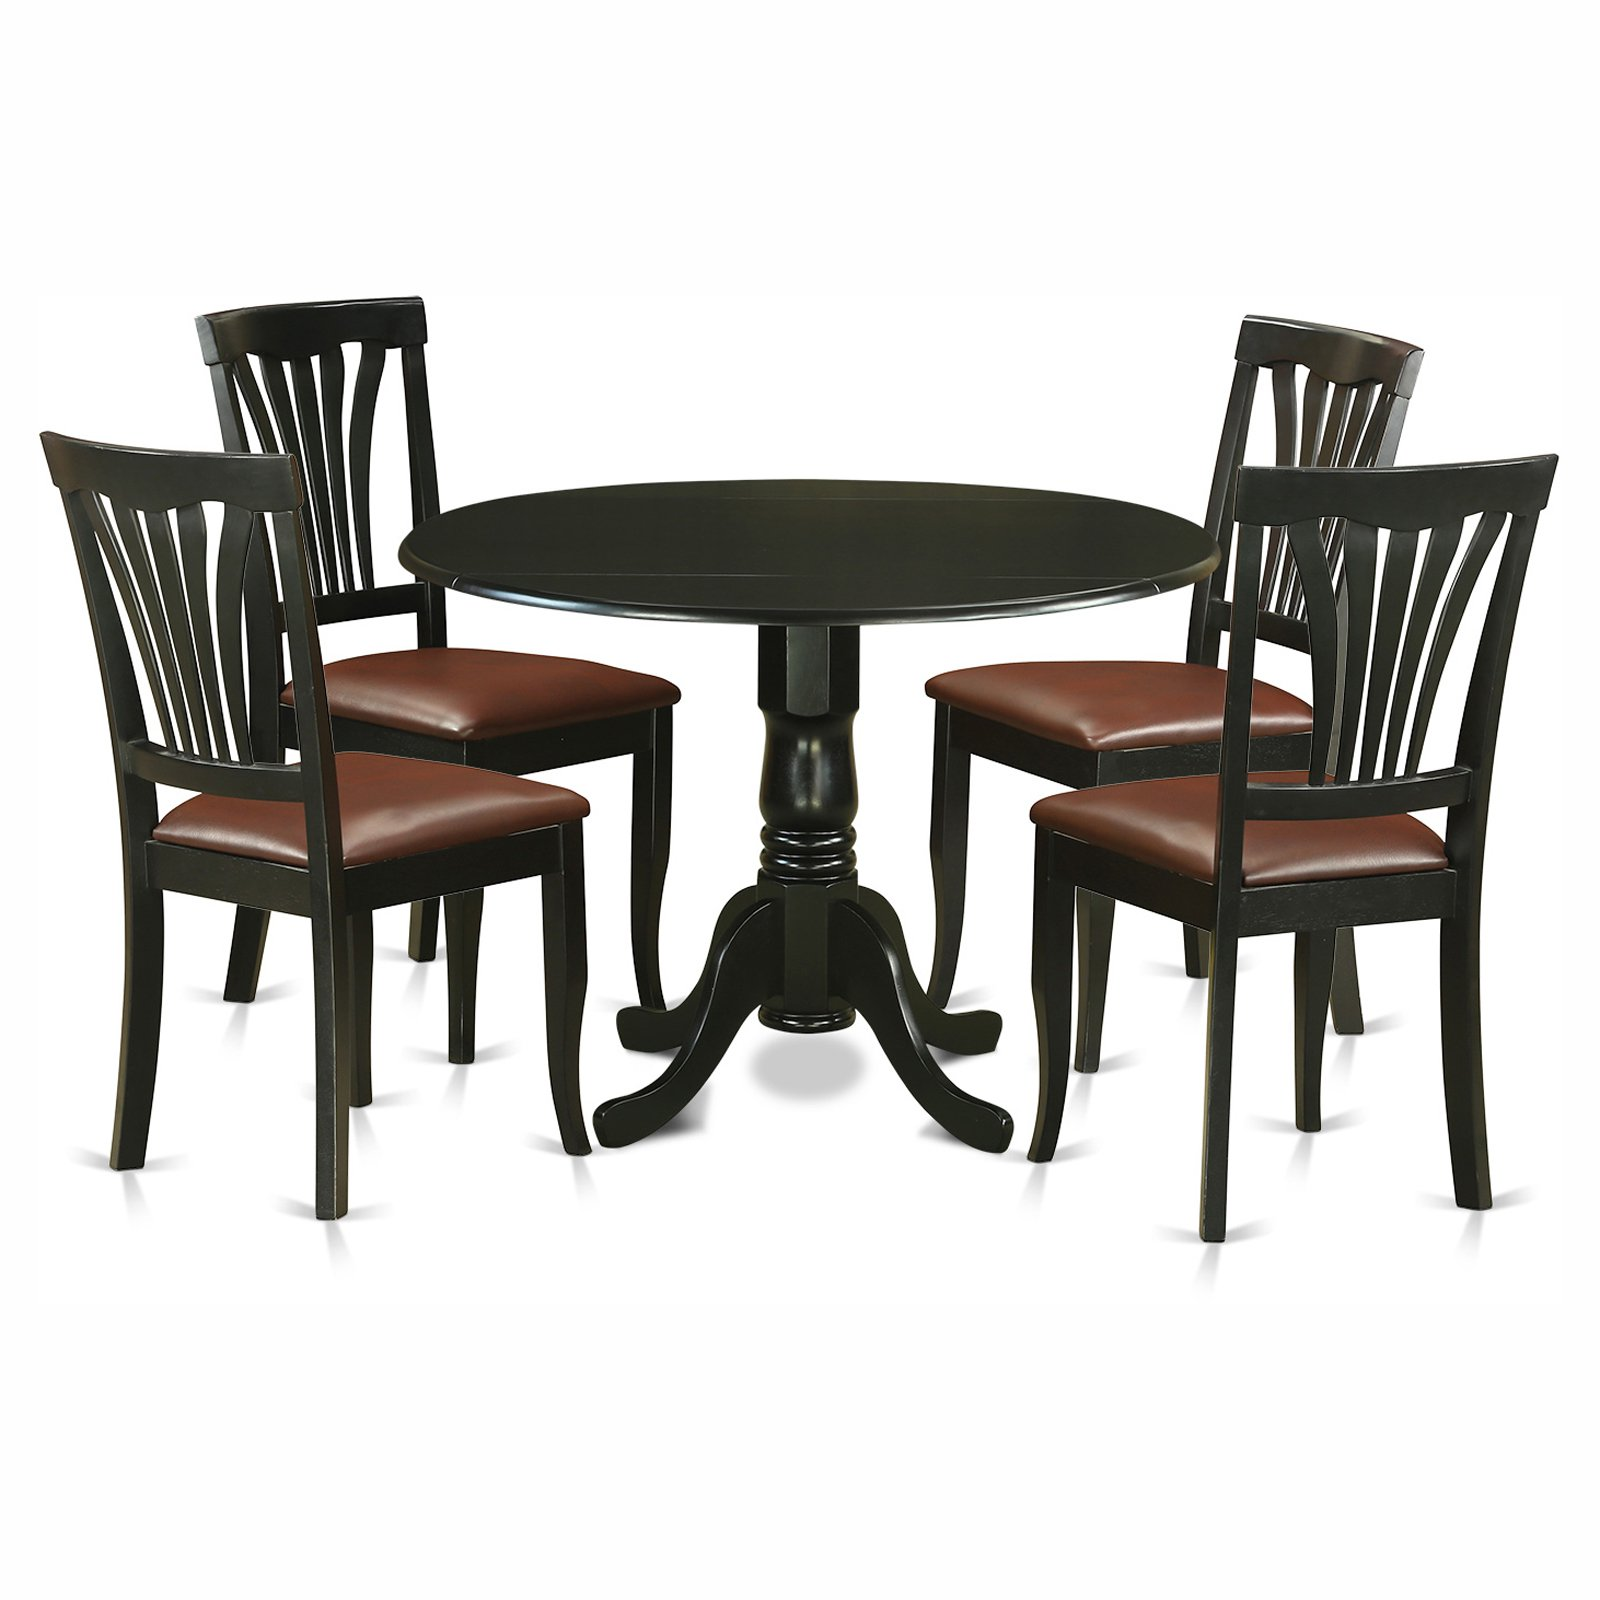 East West Furniture Dublin 5 Piece Round Dining Table Set with Avon Faux Leather Seat Chairs